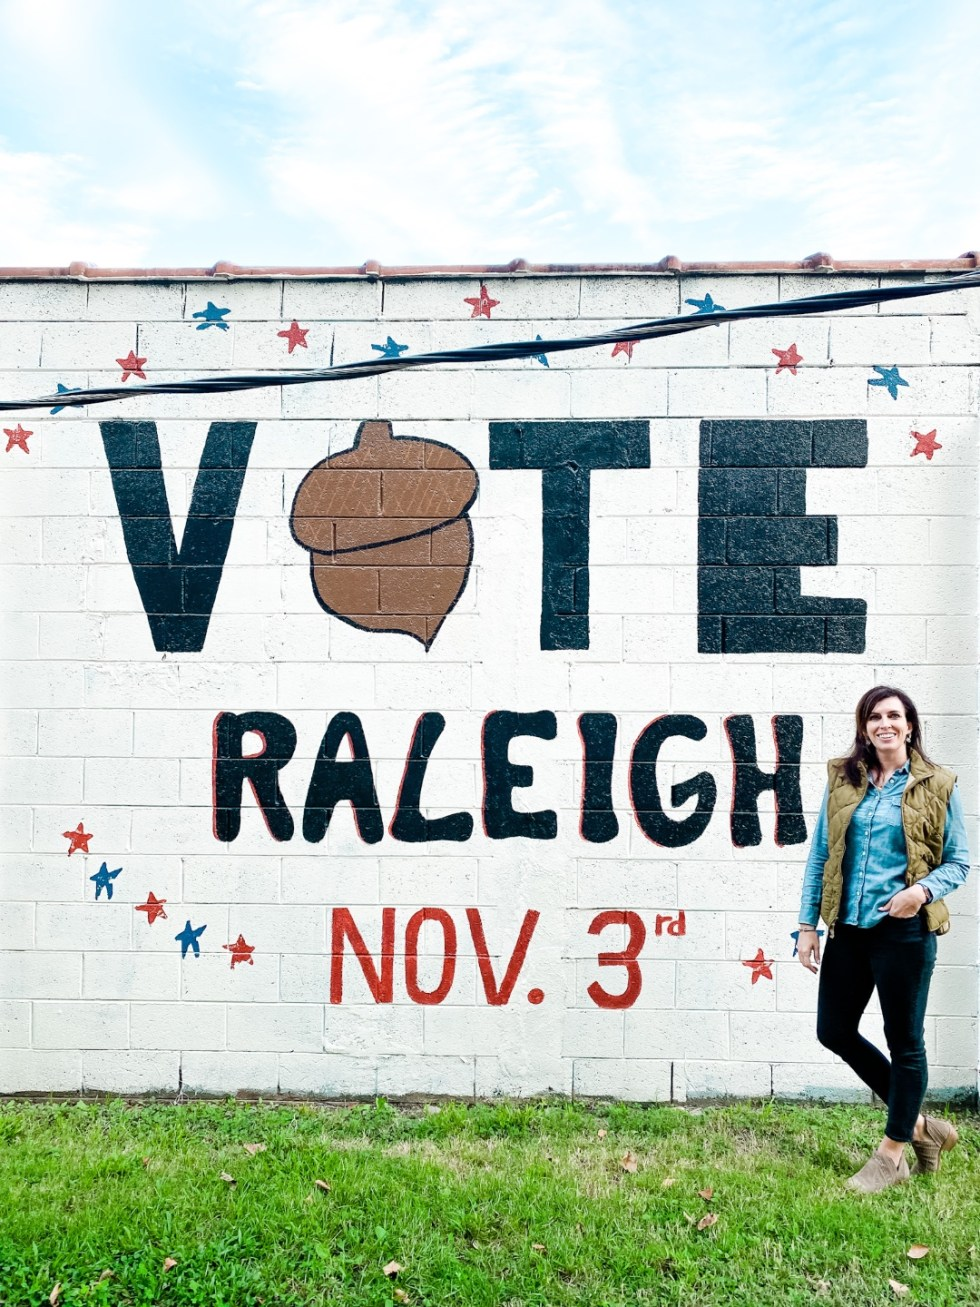 Civic Engagement Fashion Top Picks for Women - I'm Fixin' To - @mbg0112 | Civic Engagement by popular N.C. fashion blog, I'm Fixin' To: image of a woman wearing a denim shirt, green puffer vest, black jeans, and brown ankle boots and standing in front of a 'Vote Raleigh' wall mural.